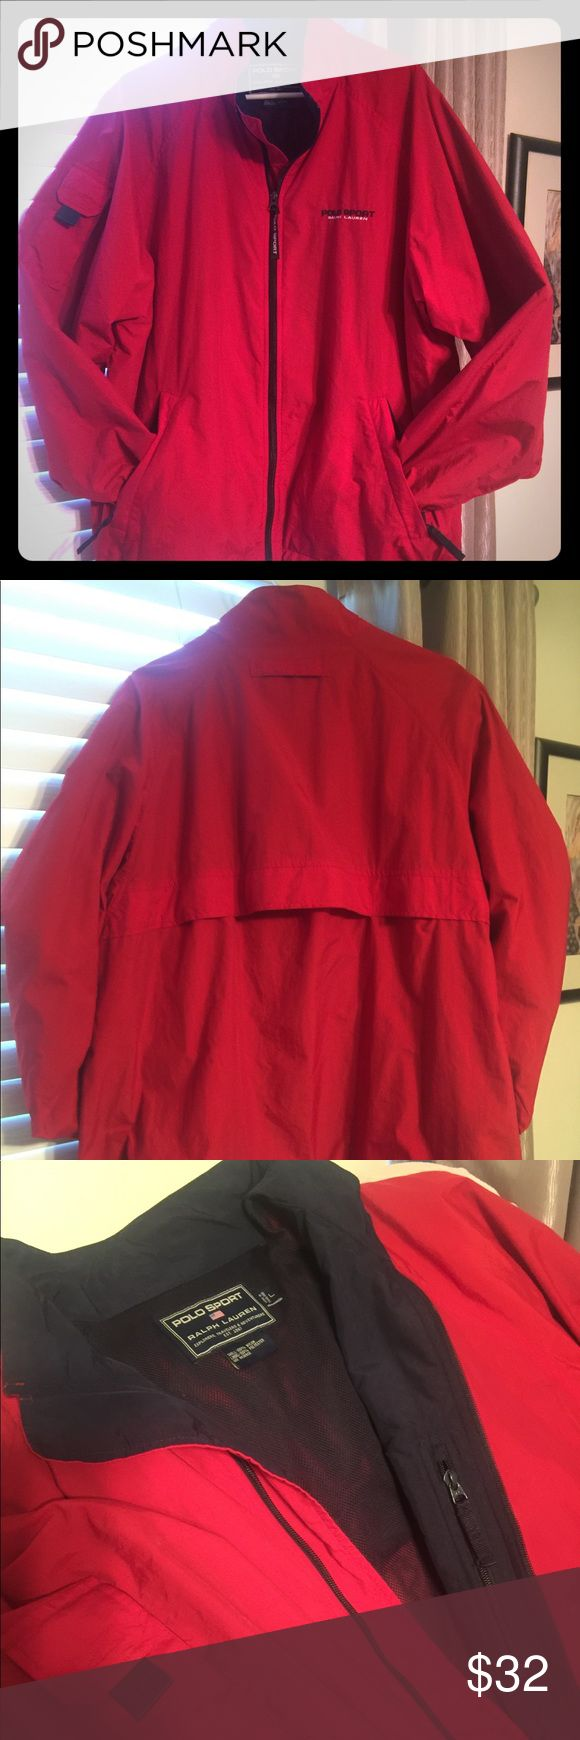 Ralph Lauren Polo Sport Jacket. Men's Polo Sport Nylon Windbreaker, Primary color Red with Navy blue trim. Full zipper front closure. Pocket on right sleeve.  Two front waist welt zip pockets. Additional inside pocket. Drawstring at the right and left side of hem.  Excellent condition. Polo by Ralph Lauren Jackets & Coats Windbreakers